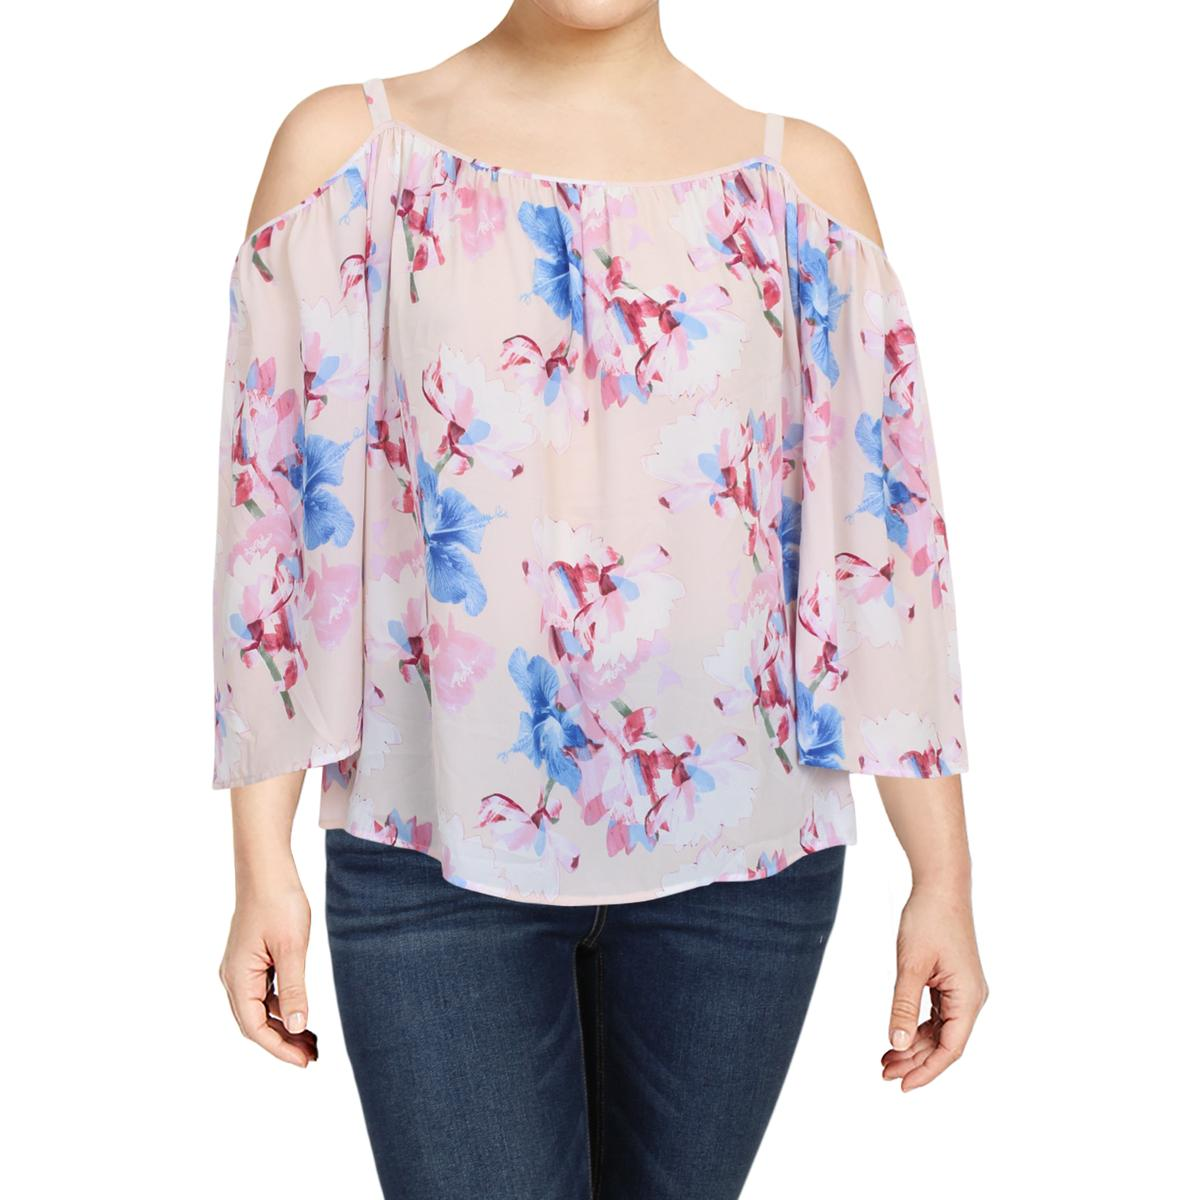 b15b9410e0326 Details about Vince Camuto Womens Pink Cold Shoulder Printed Blouse Top Plus  3X BHFO 7487